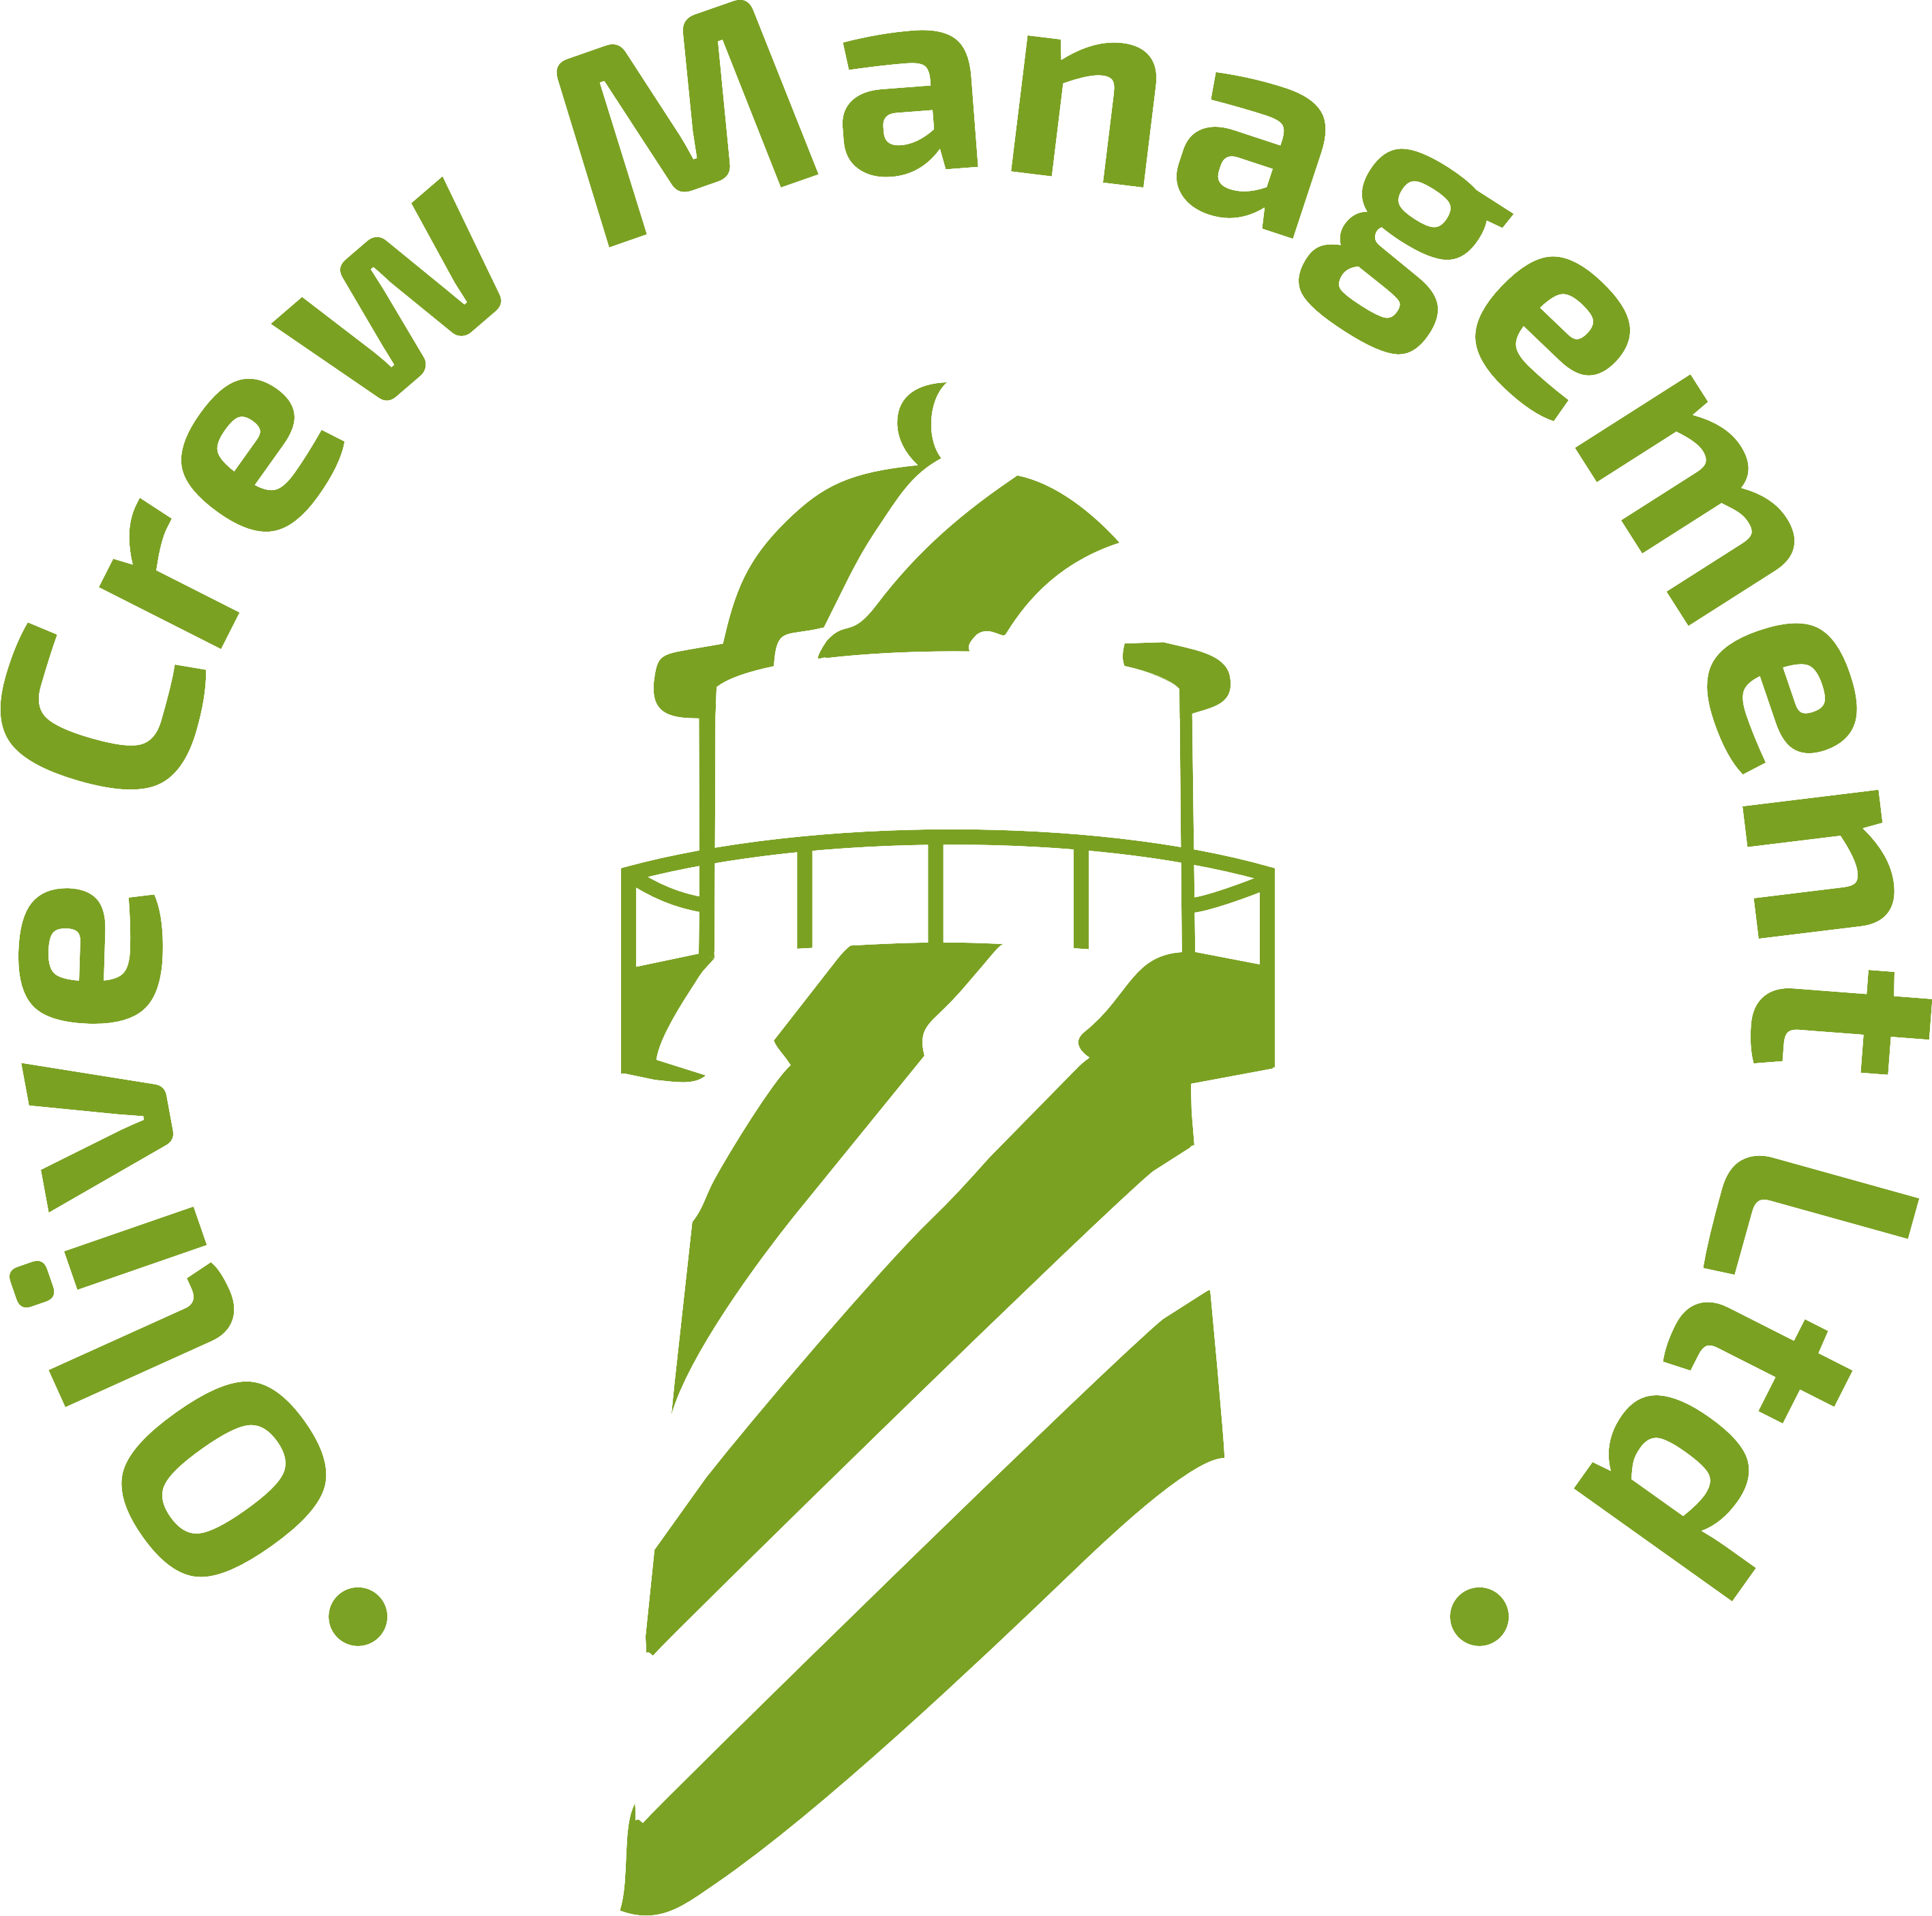 Olive Crew Management Ltd